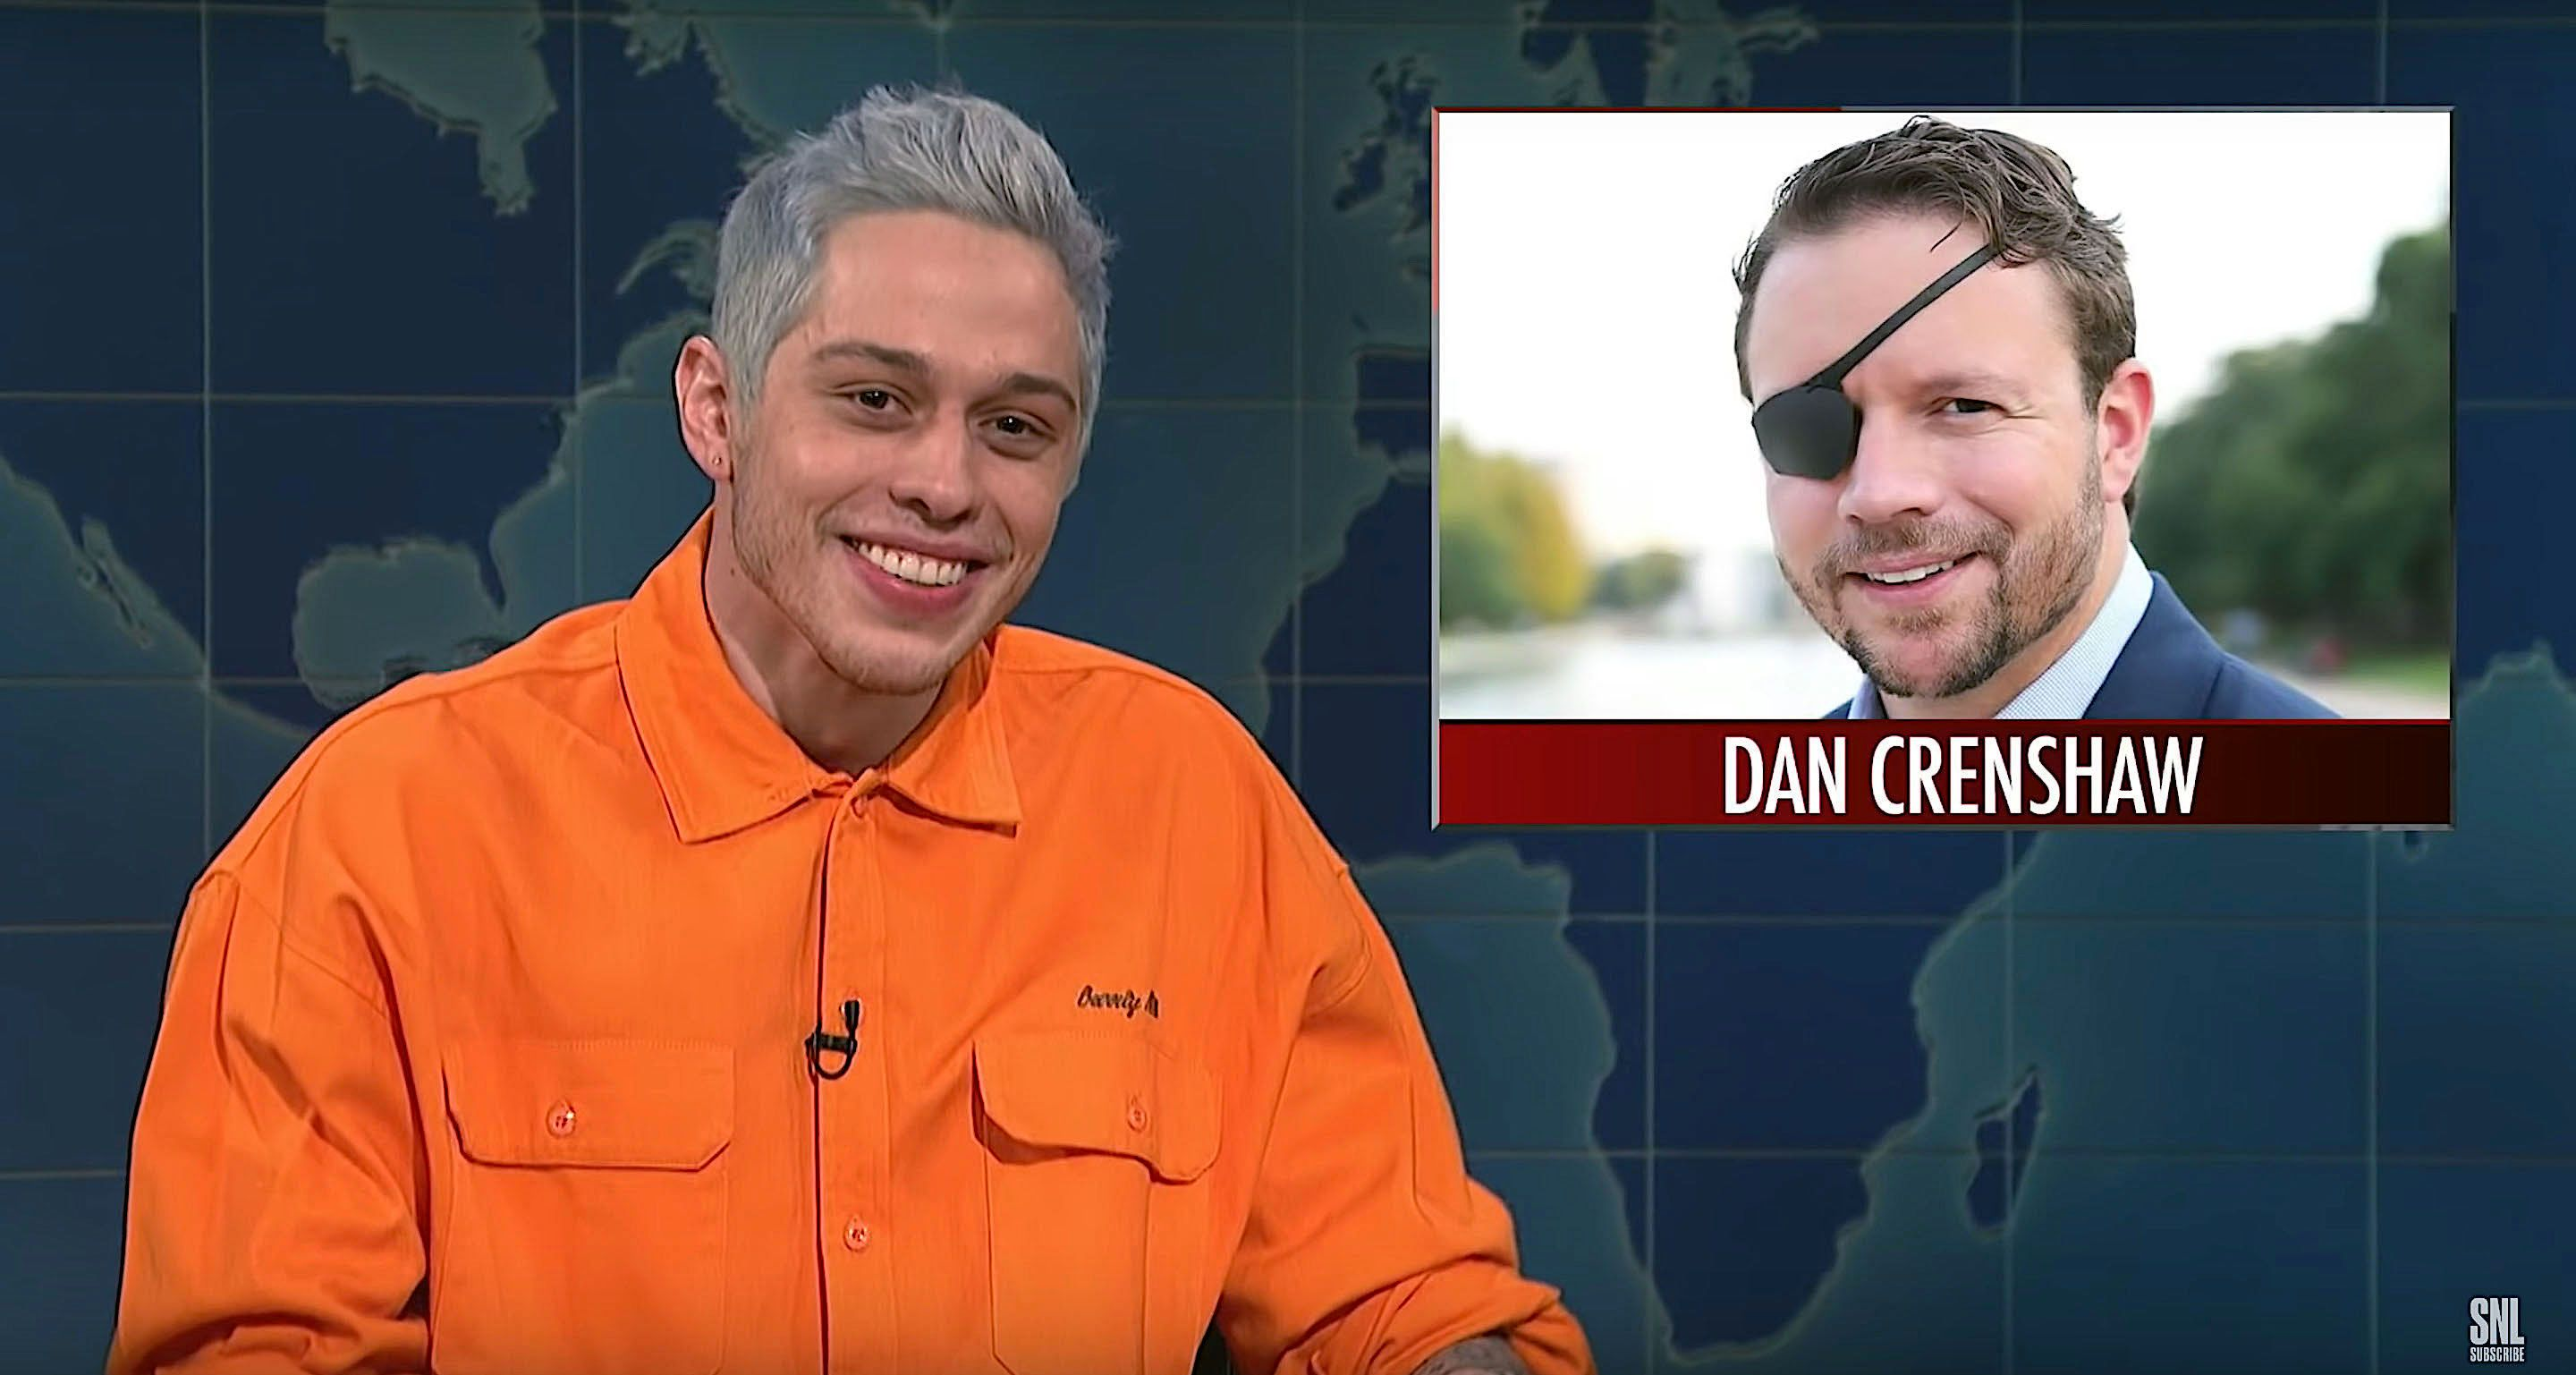 """Pete Davidson on """"Saturday Night Live"""" described Dan Crenshaw, a former Navy Seal, as looking like a hitman in a porno movie. Crenshaw lost his eye while serving in Afghanistan."""